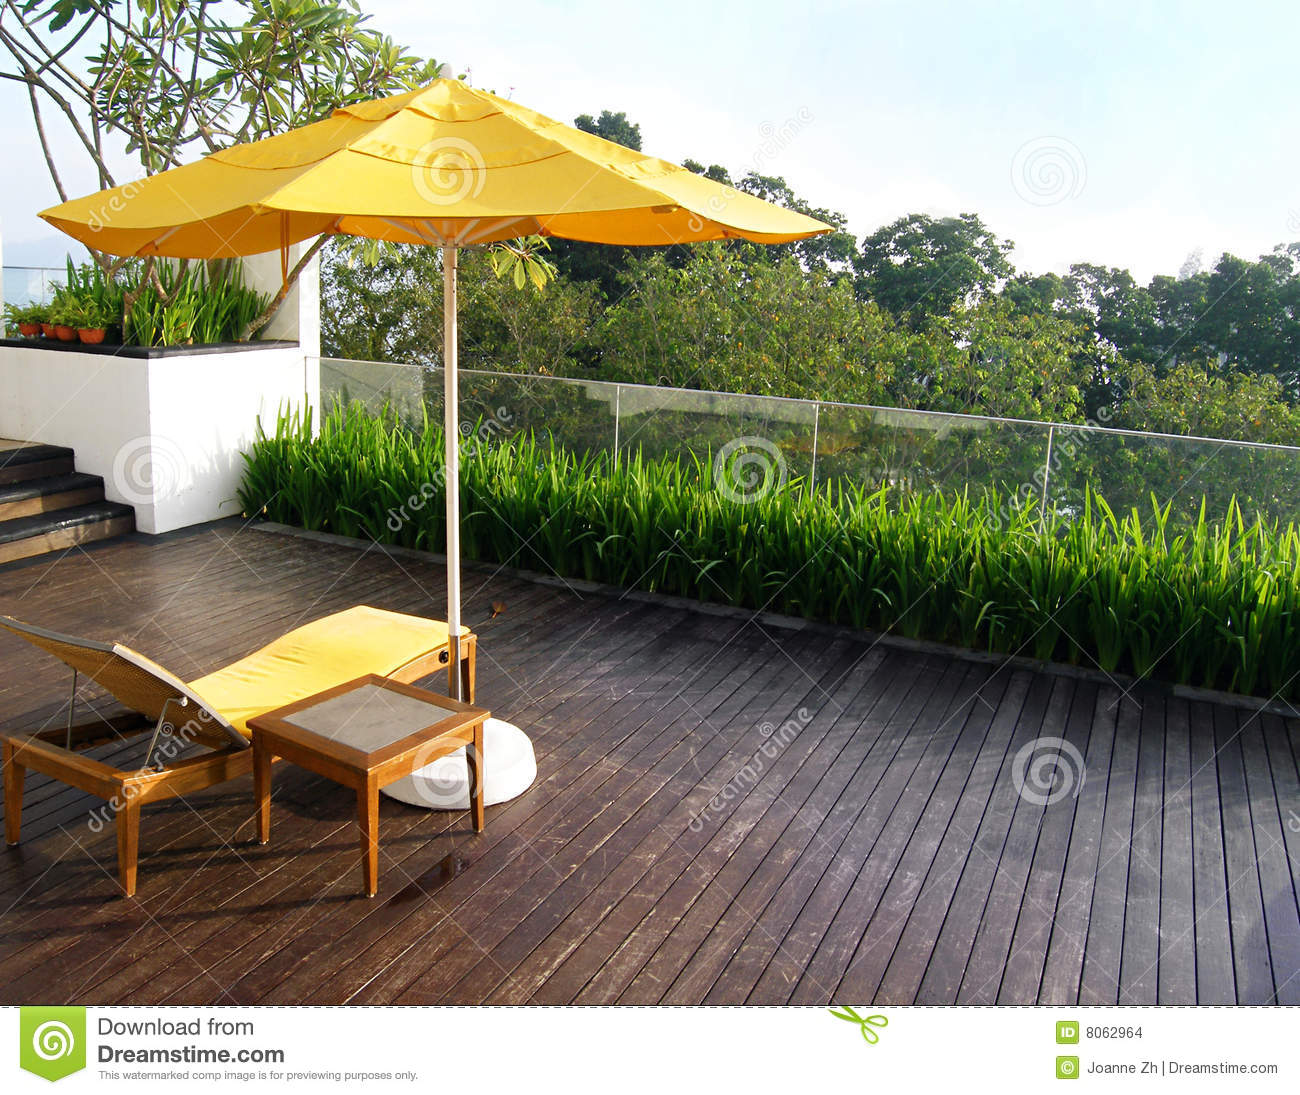 Balcony Garden Design avoid using too much floor space of your balcony do not overcrowd it instead devise ways to utilize vertical space to double up your space Chairs